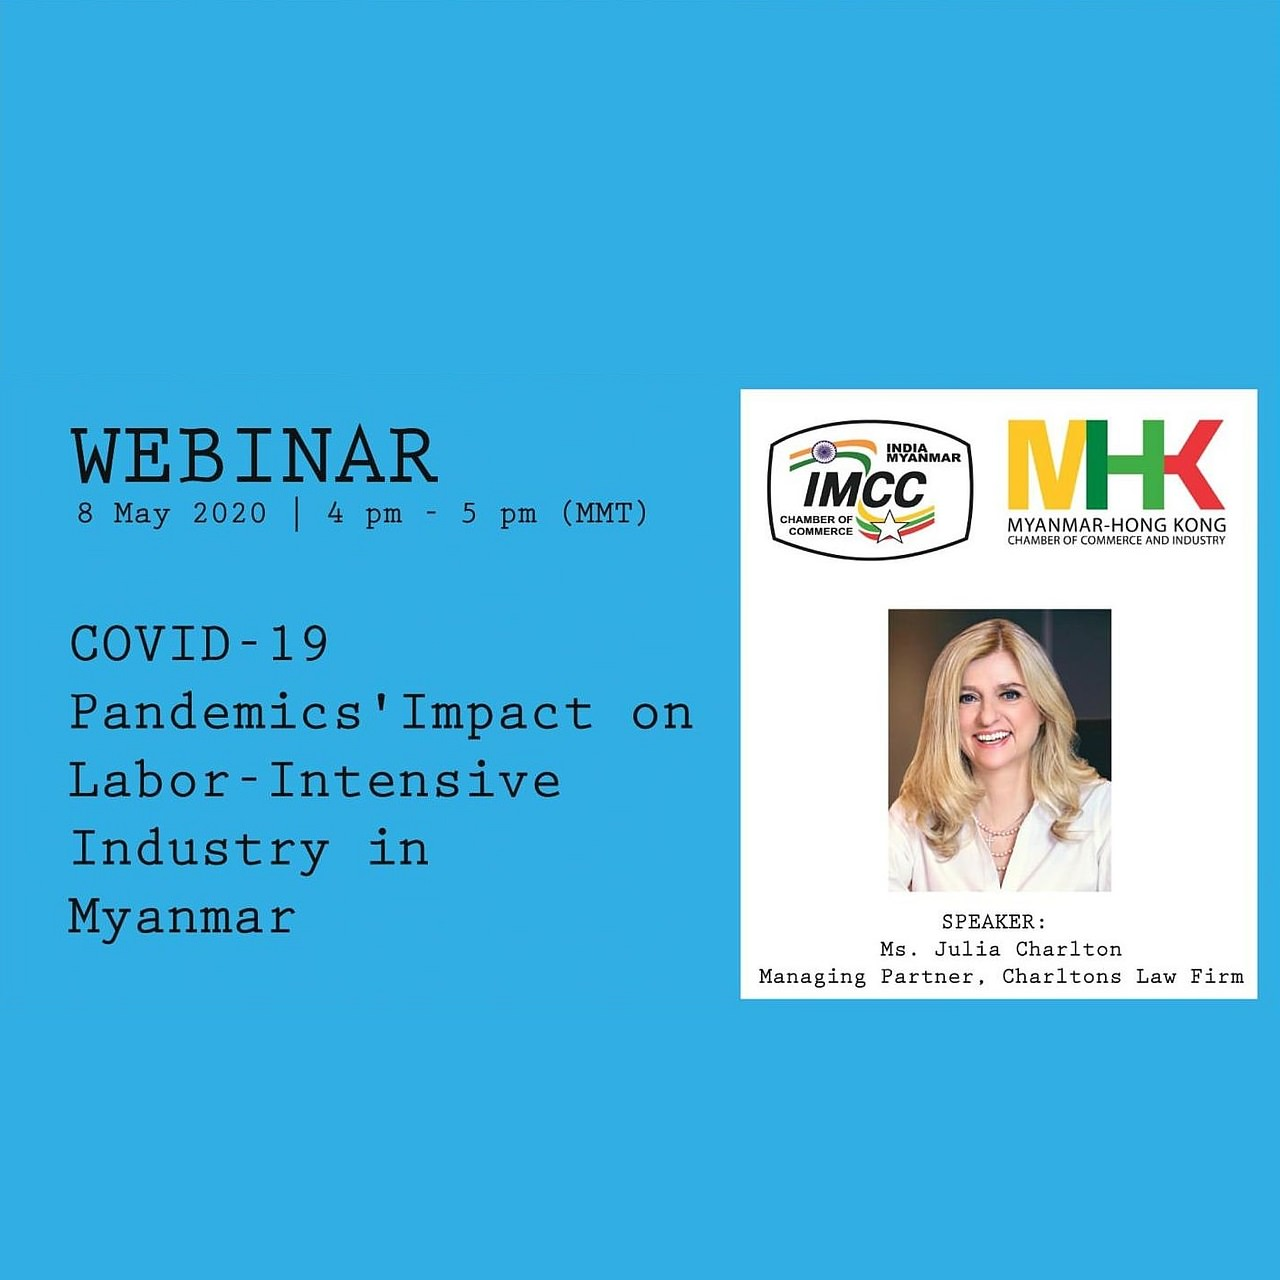 COVID-19 Pandemics' Impact on Labour-Intensive Industry in Myanmar